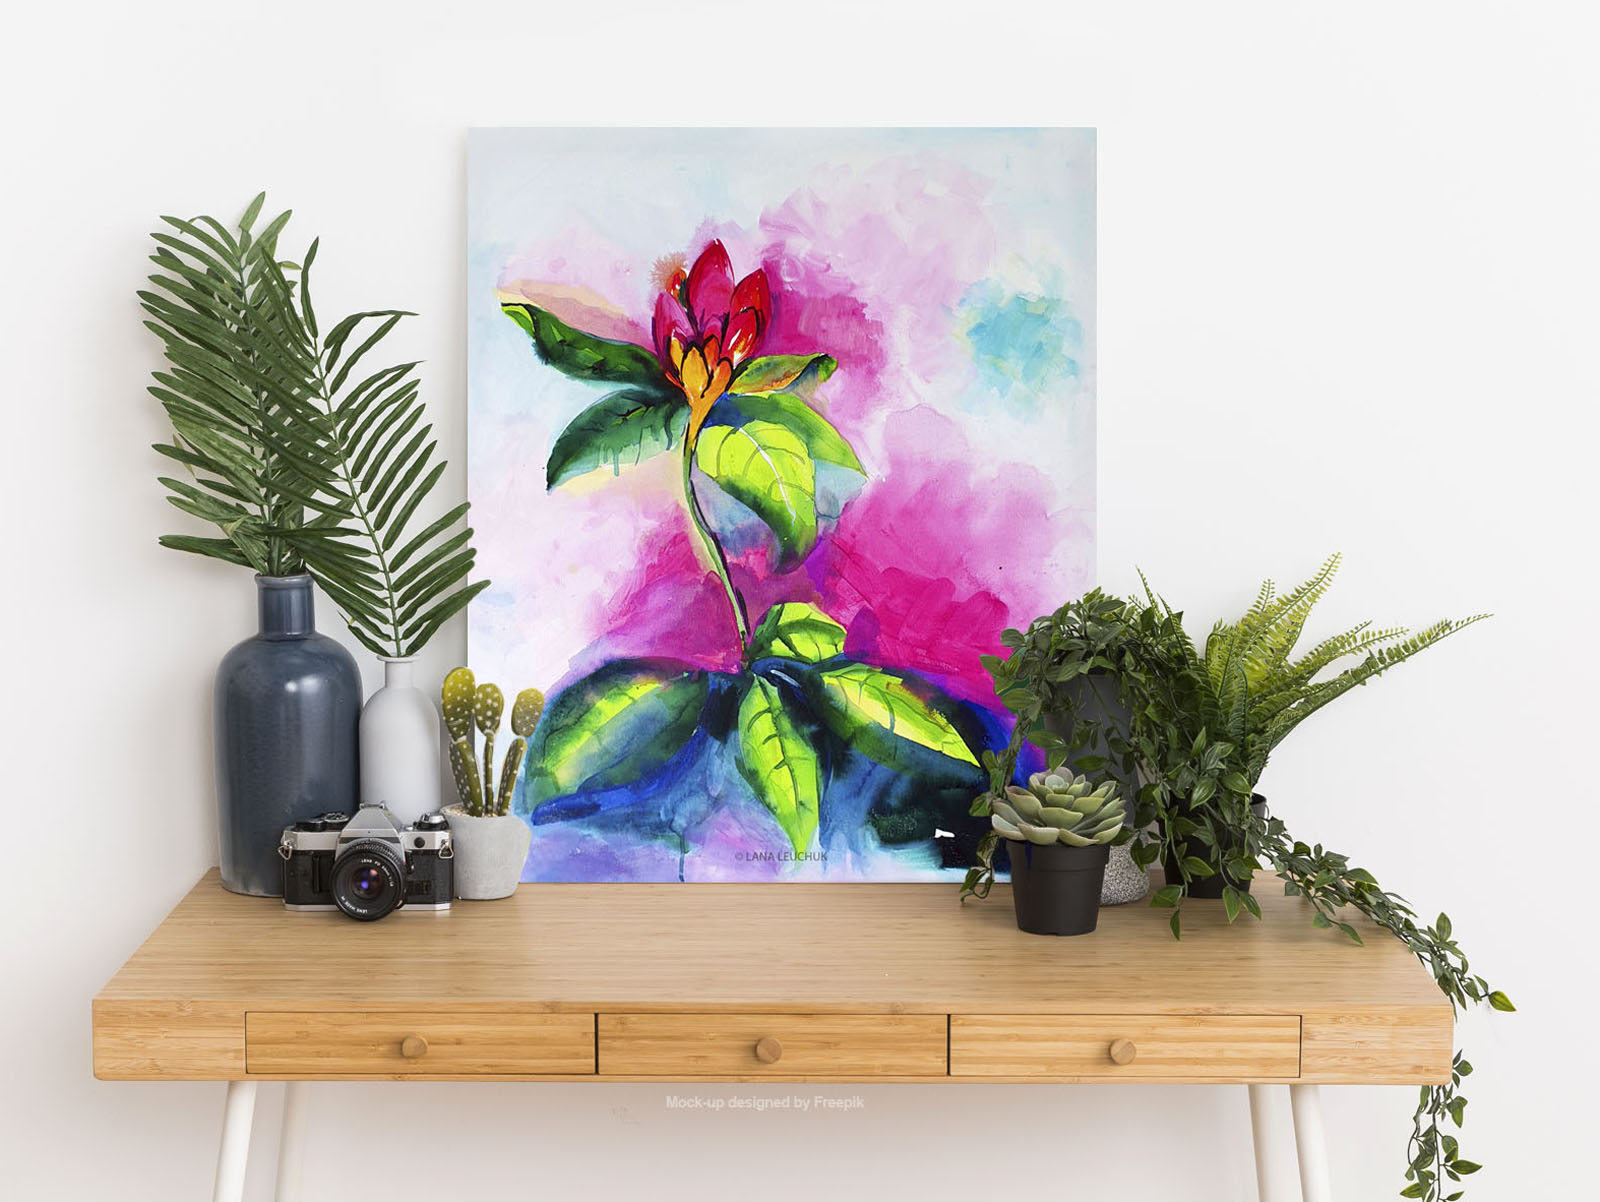 art-in-interior-the power of now-2-painting-by Lana Leuchuk-w